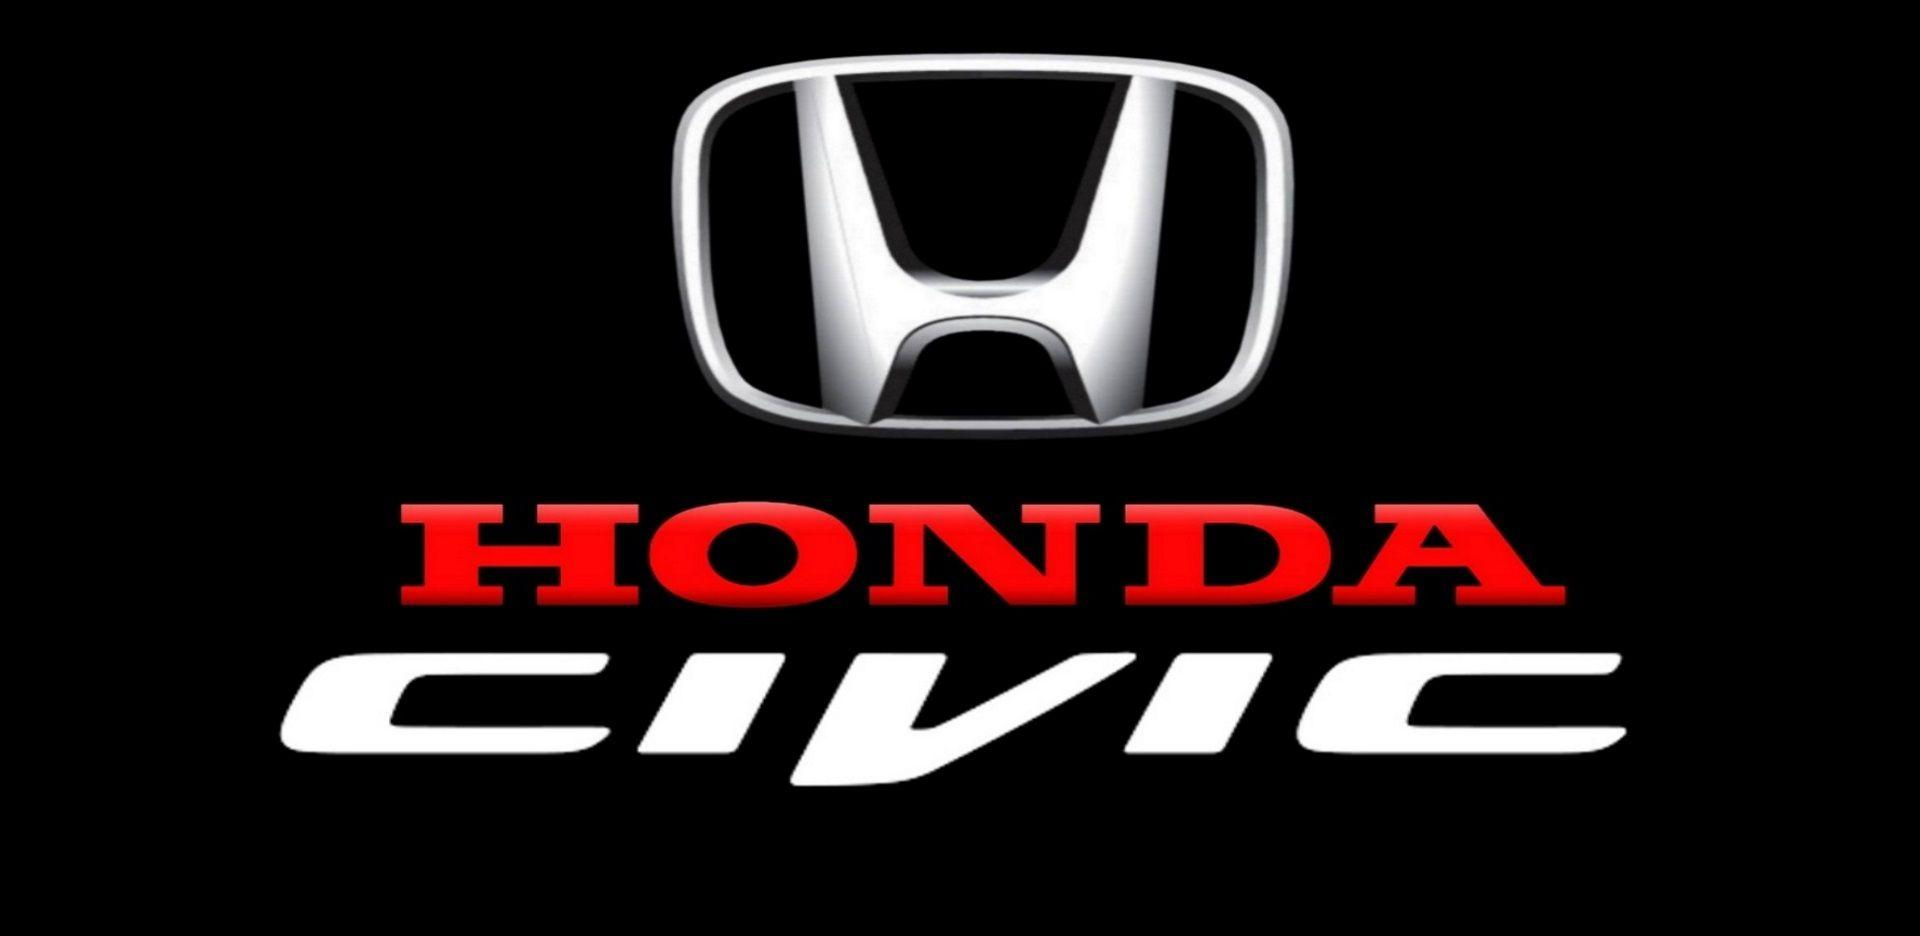 honda civic logo wallpapers wallpaper cave rh wallpapercave com civic logo eps civic logo font